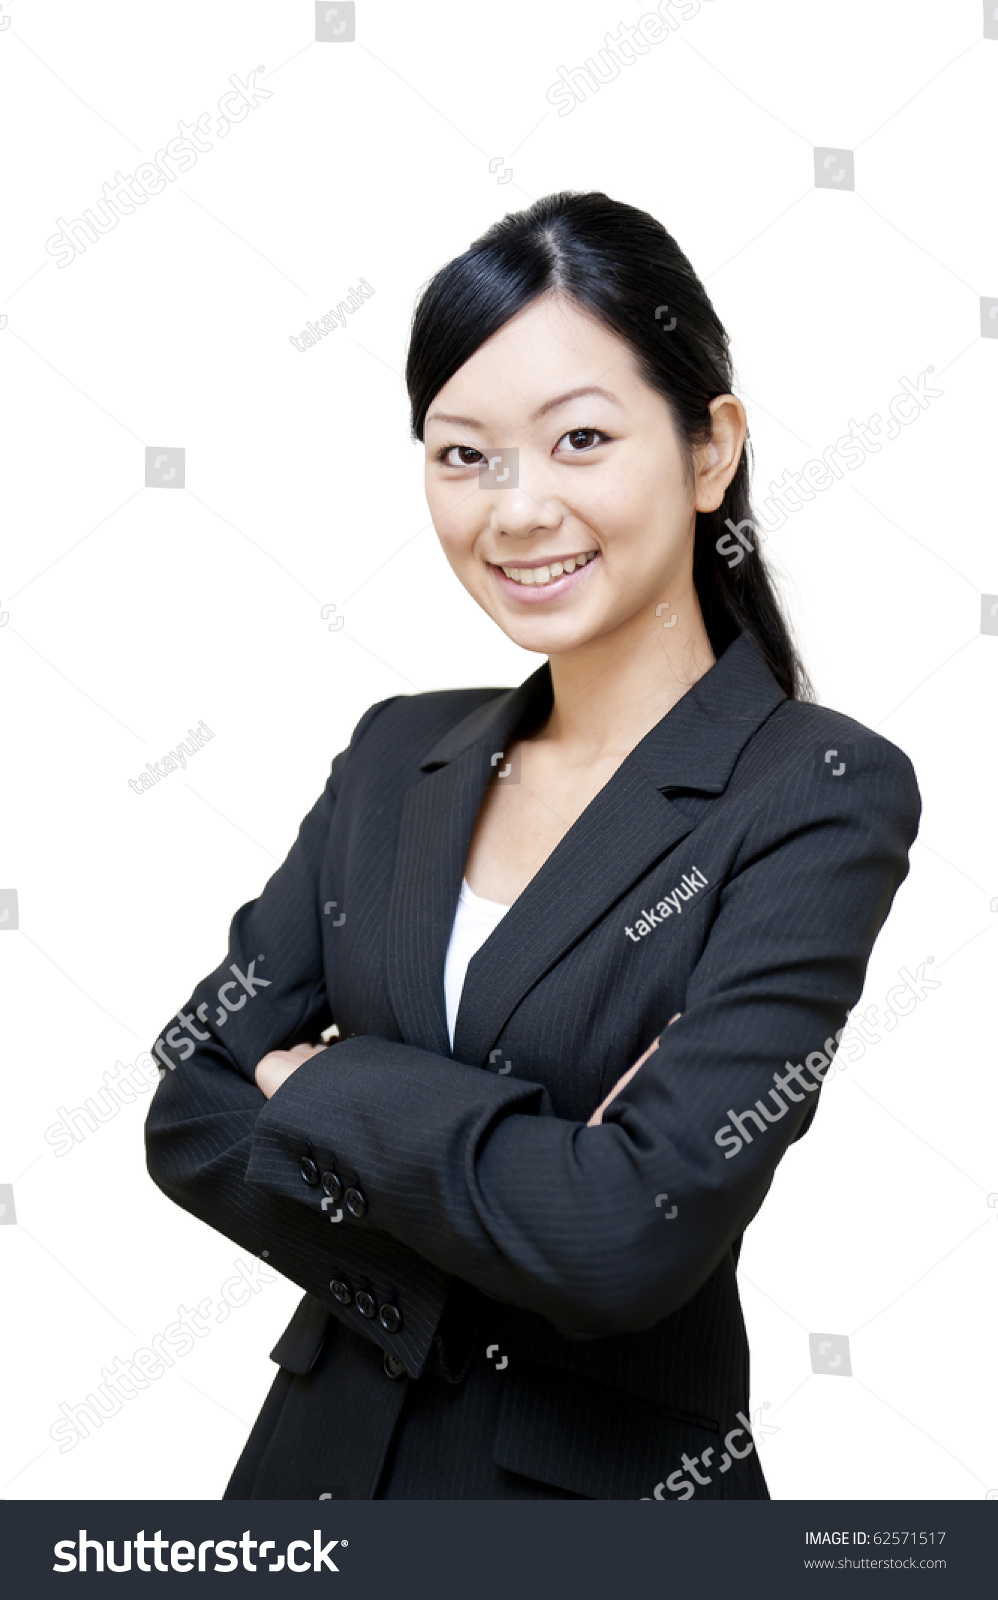 stock-photo-portrait-of-japanese-business-woman-62571517.jpg